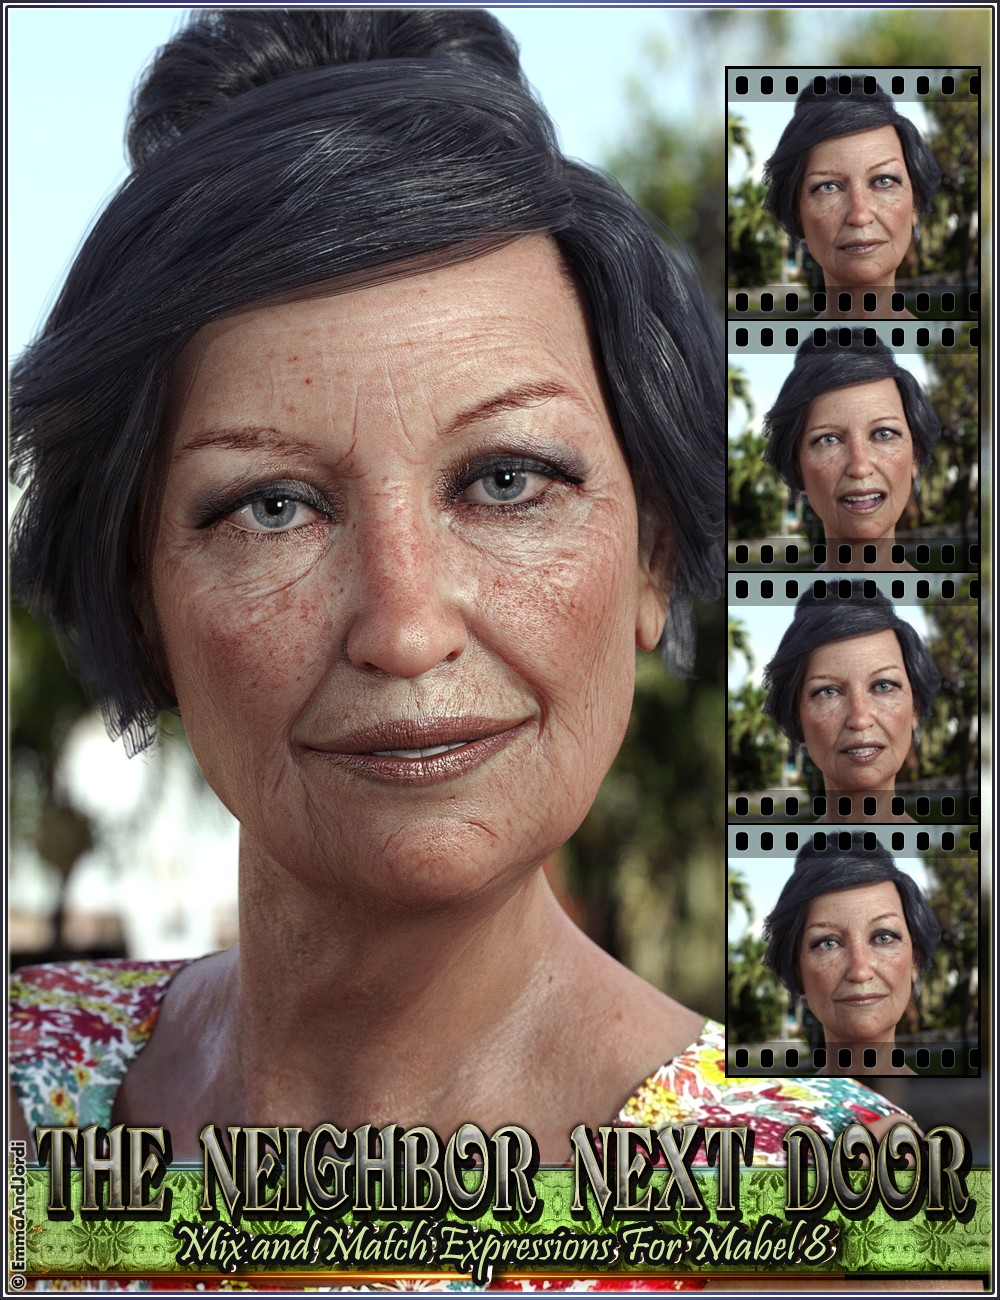 The Neighbor Next Door Mix And Match Expressions For Mabel 8 And Genesis 8 Female(s) by: EmmaAndJordi, 3D Models by Daz 3D